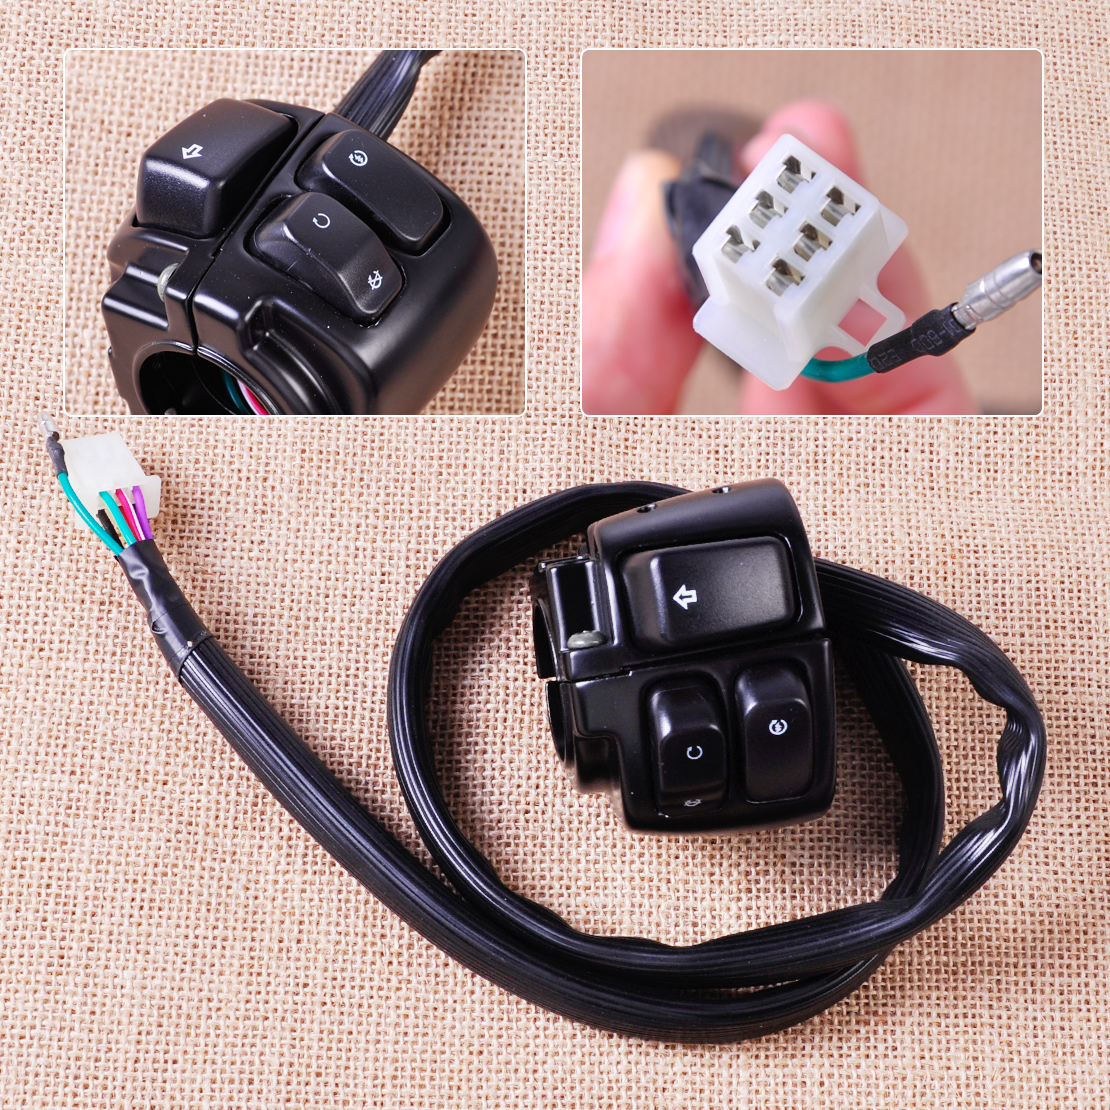 1 034 handlebar ignition turn signal switch wire harness fit motorcycle 1 handlebar ignition kill switch wiring harness fits for harley davidson softail dyna sportster 1200 883 v rod Â